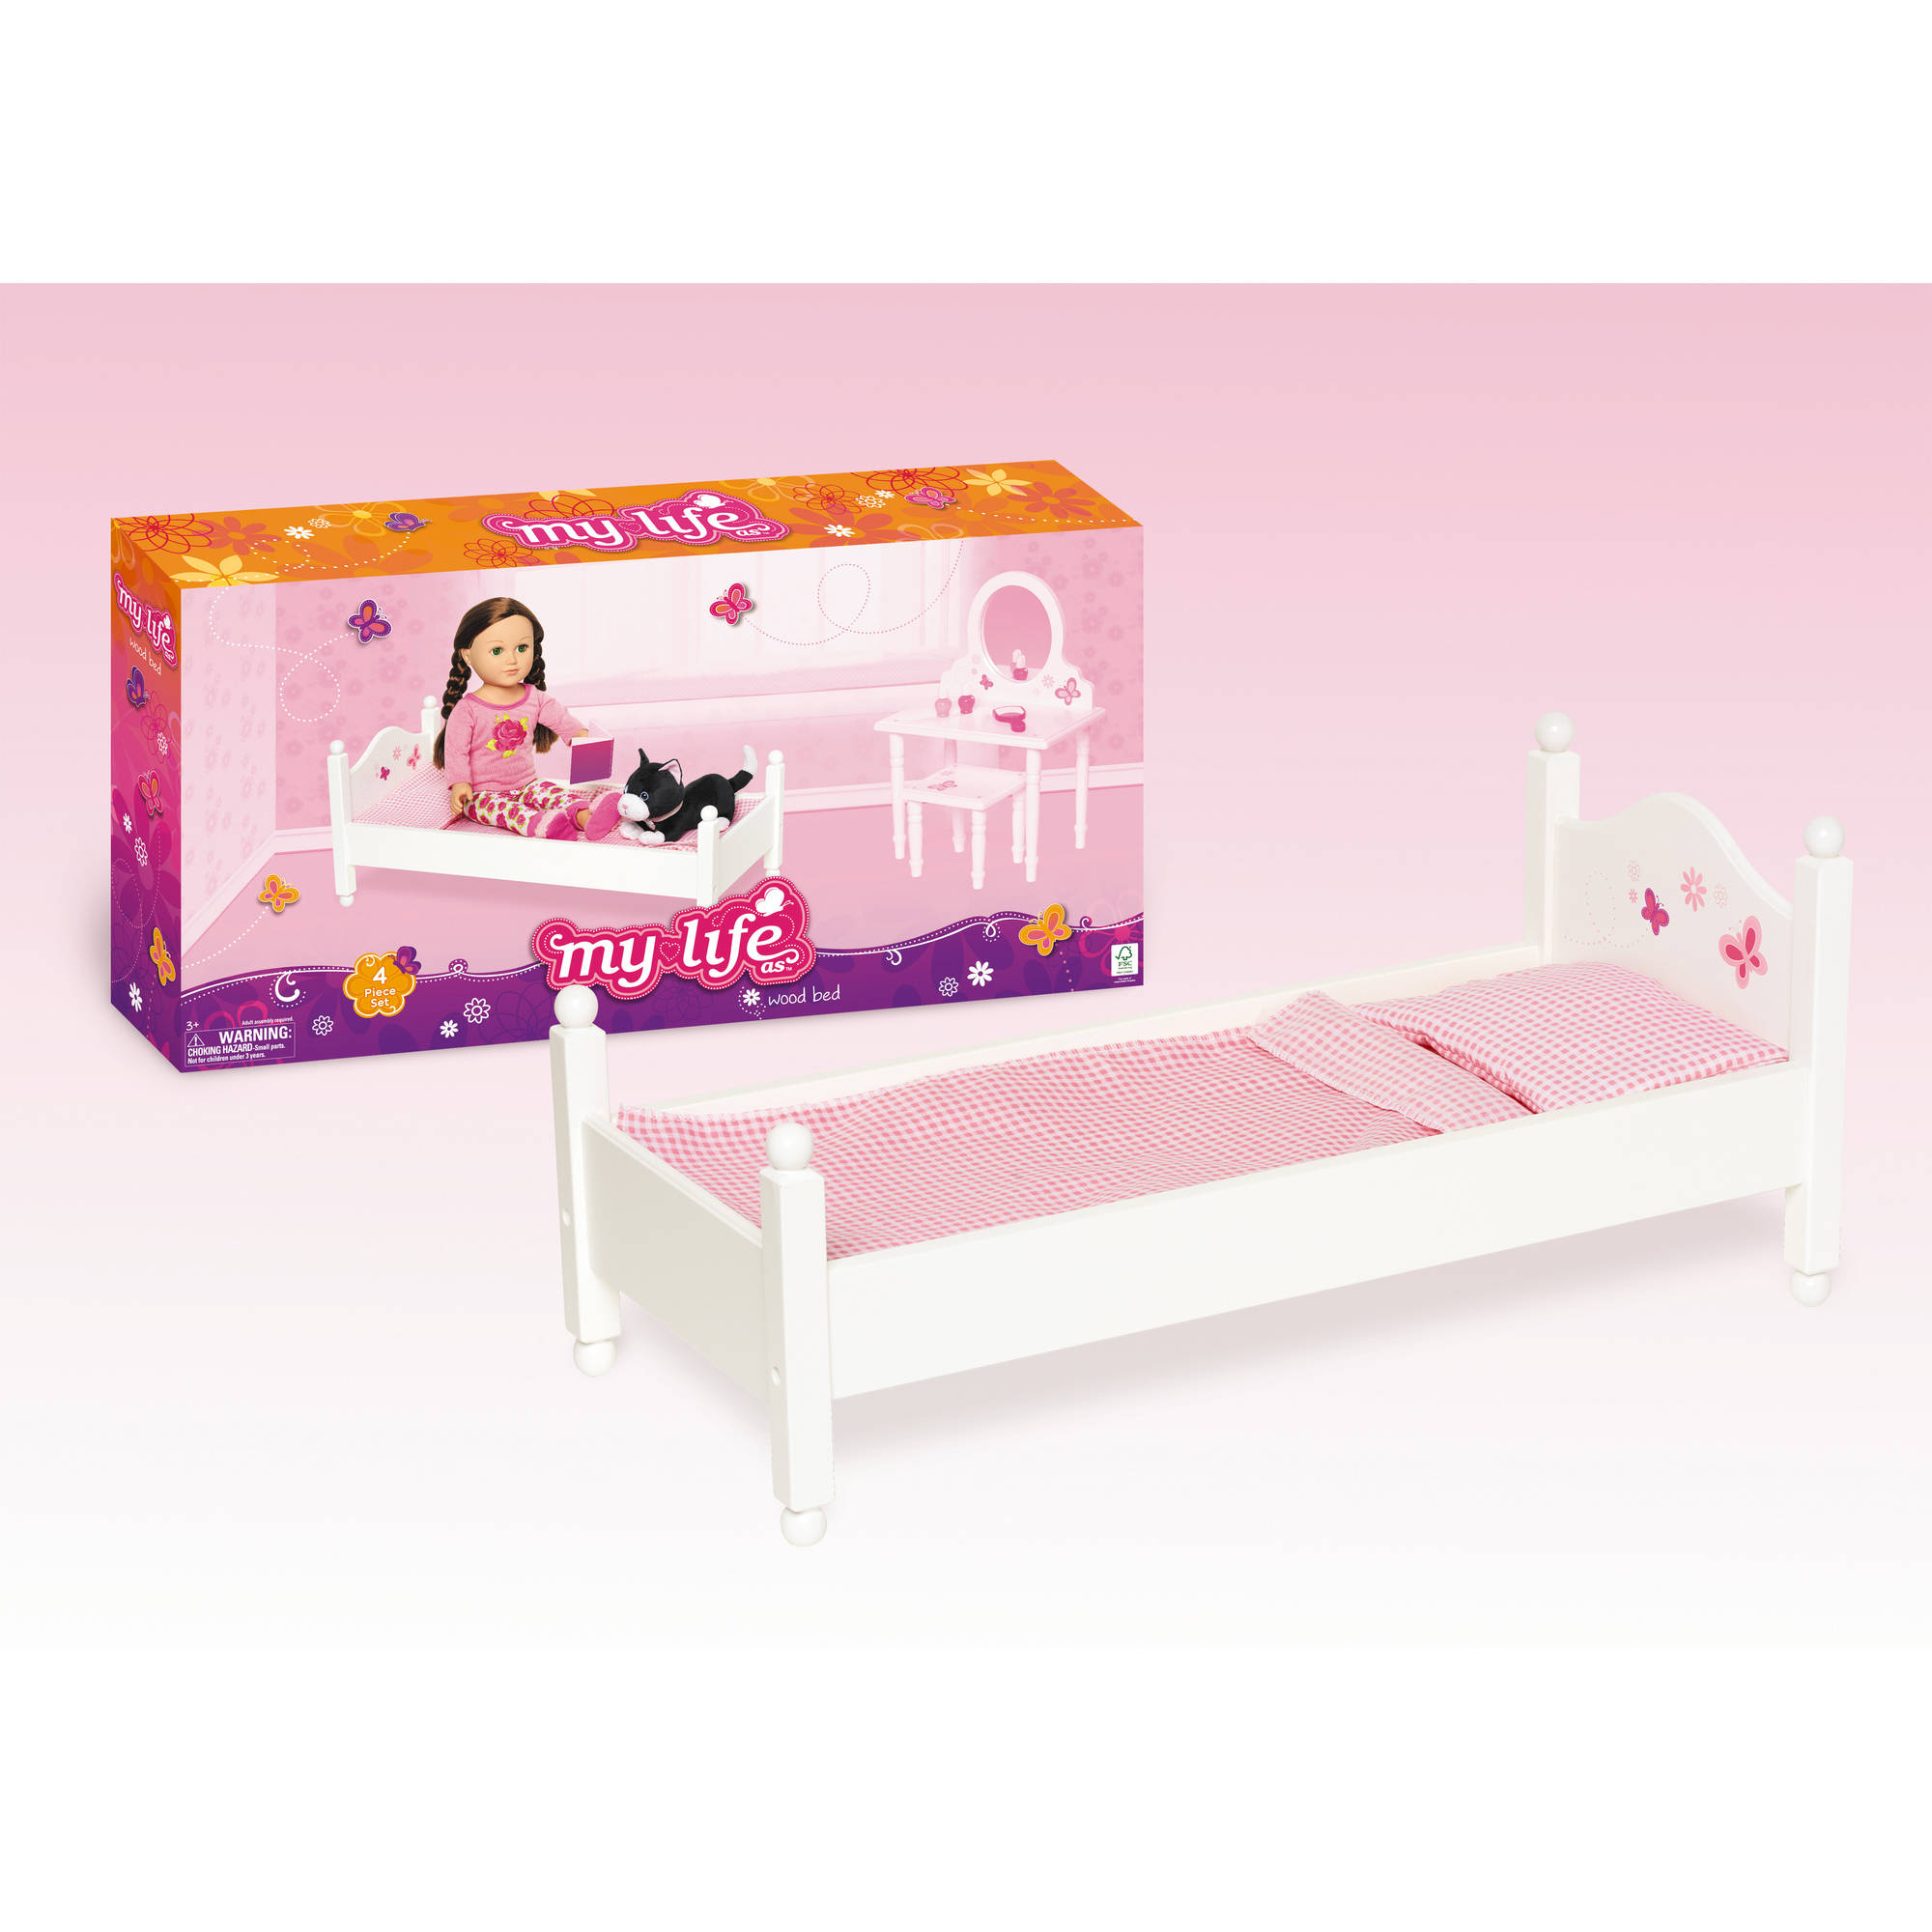 My Life As My Life As 18 Doll Furniture Bed Walmart Com